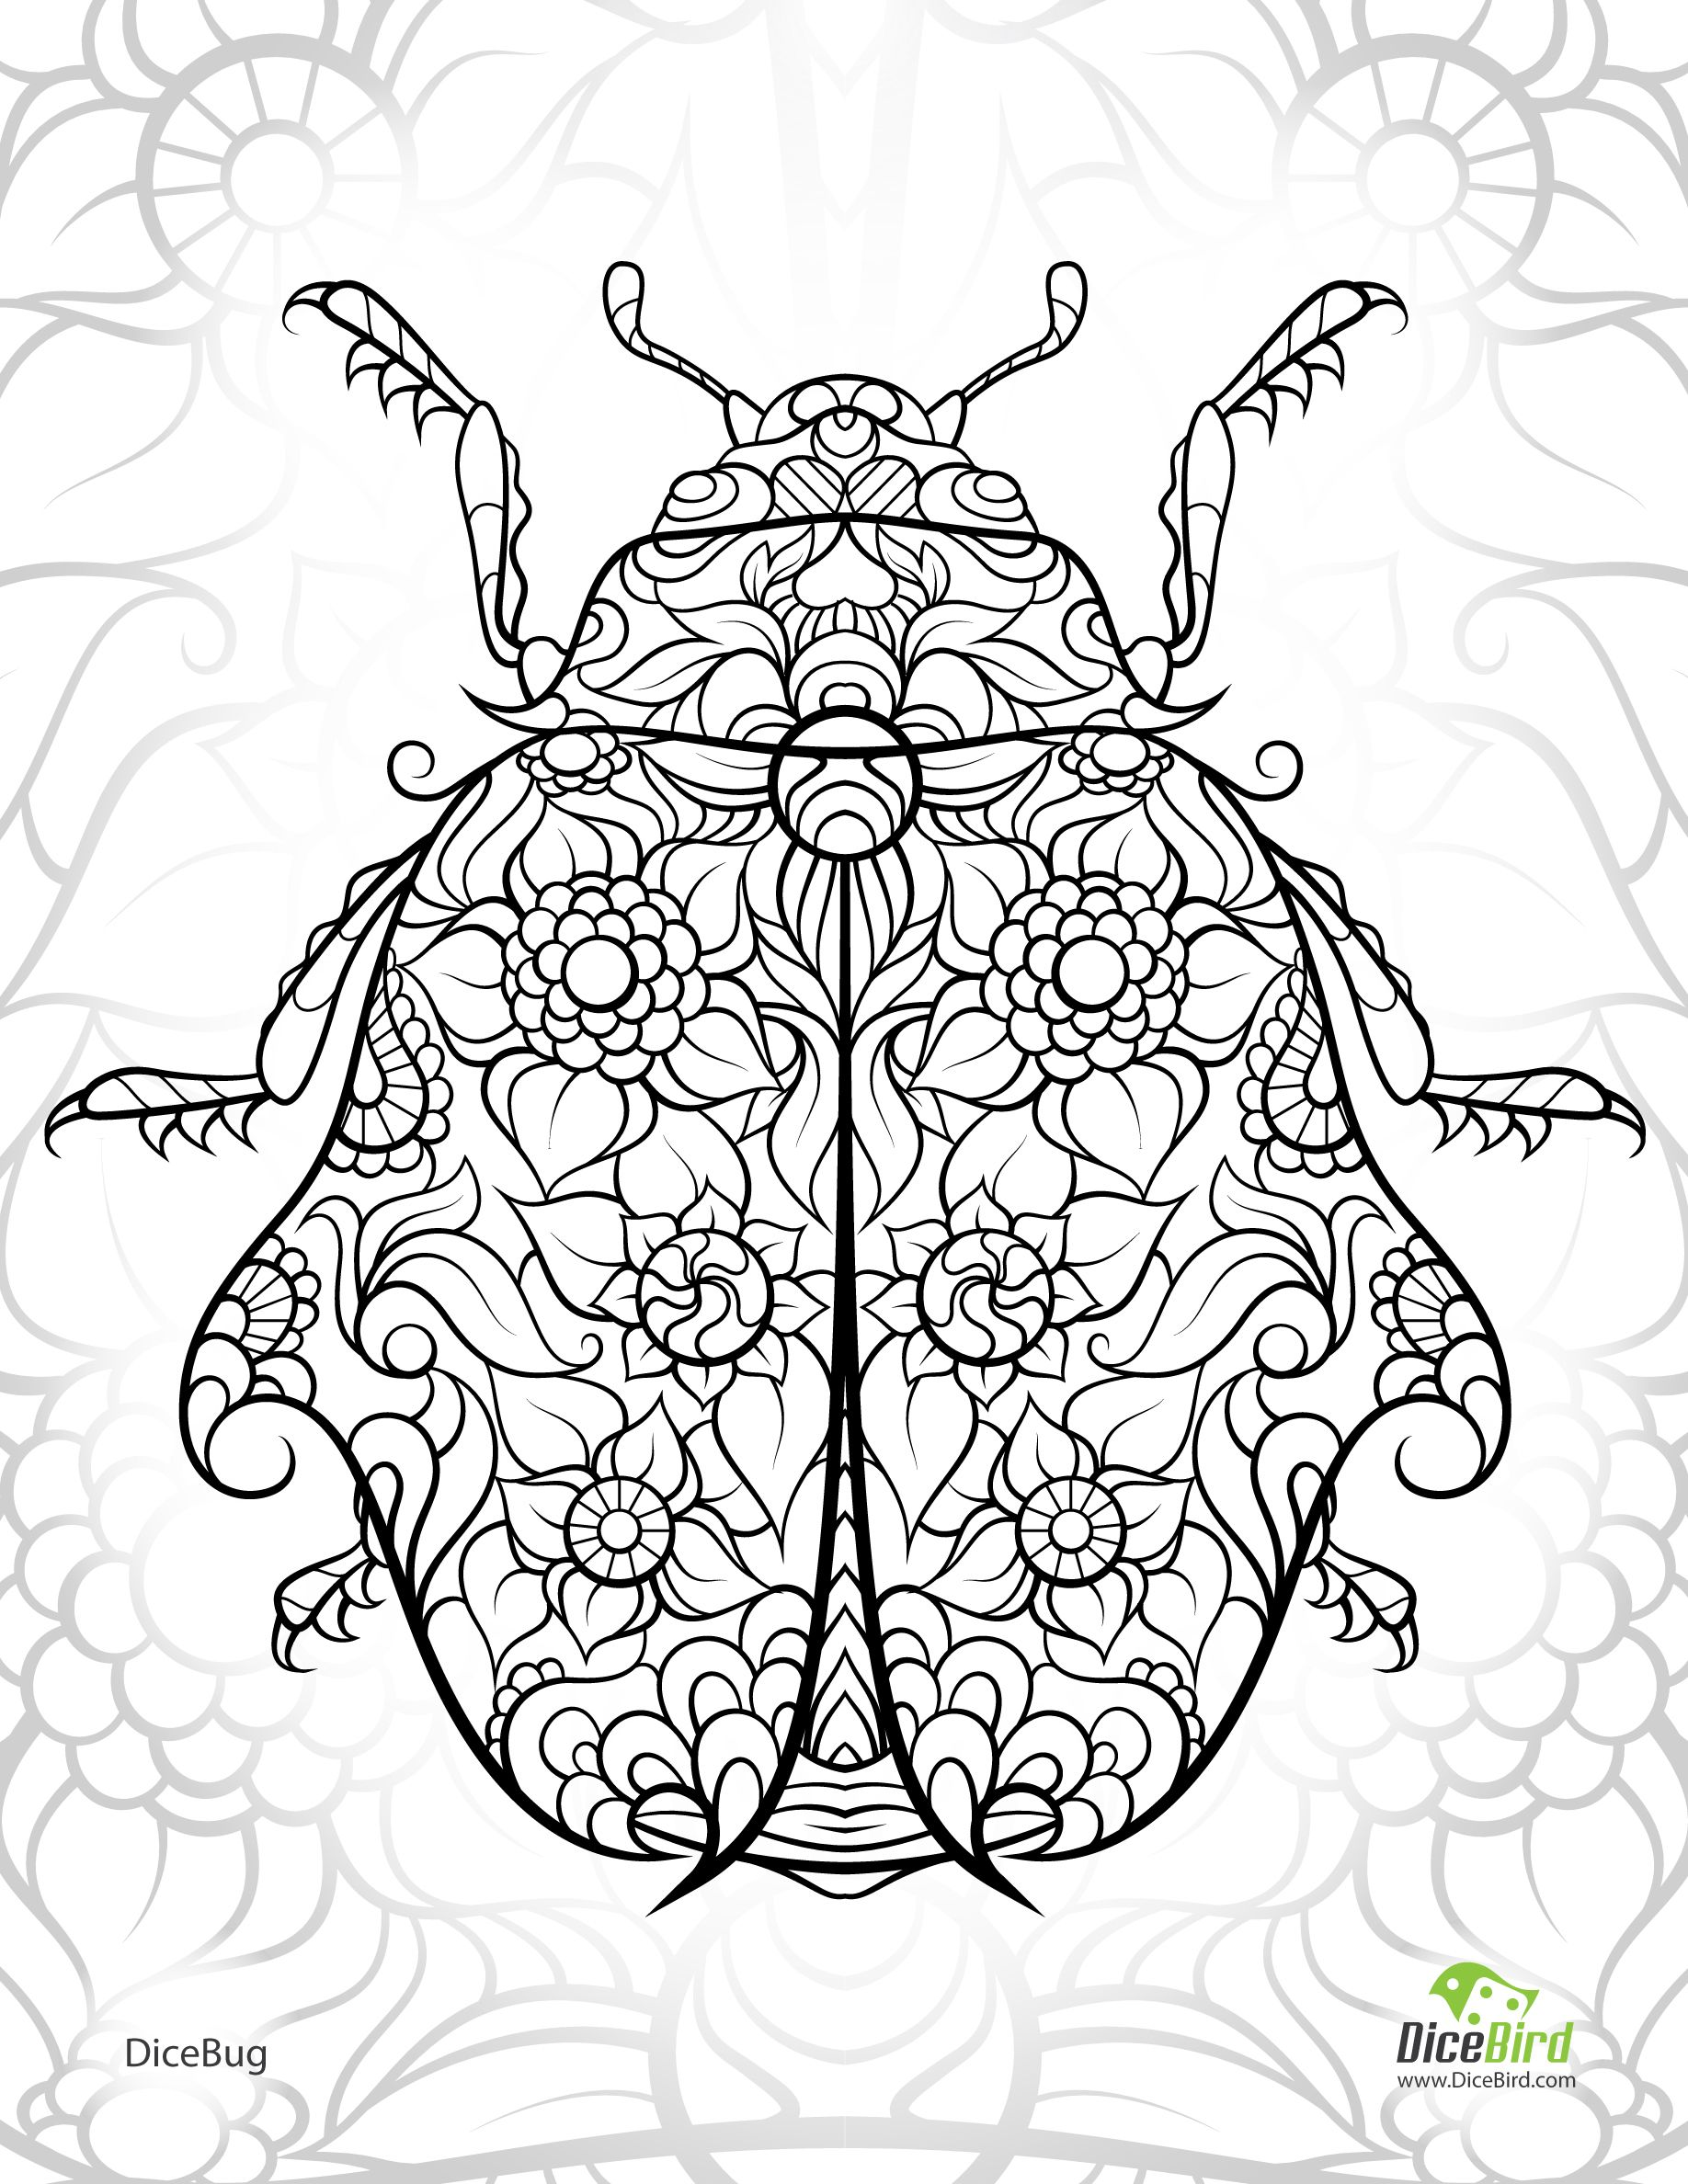 DiceBug LadyBug - free adult coloring pages to print | Эмалевая ...